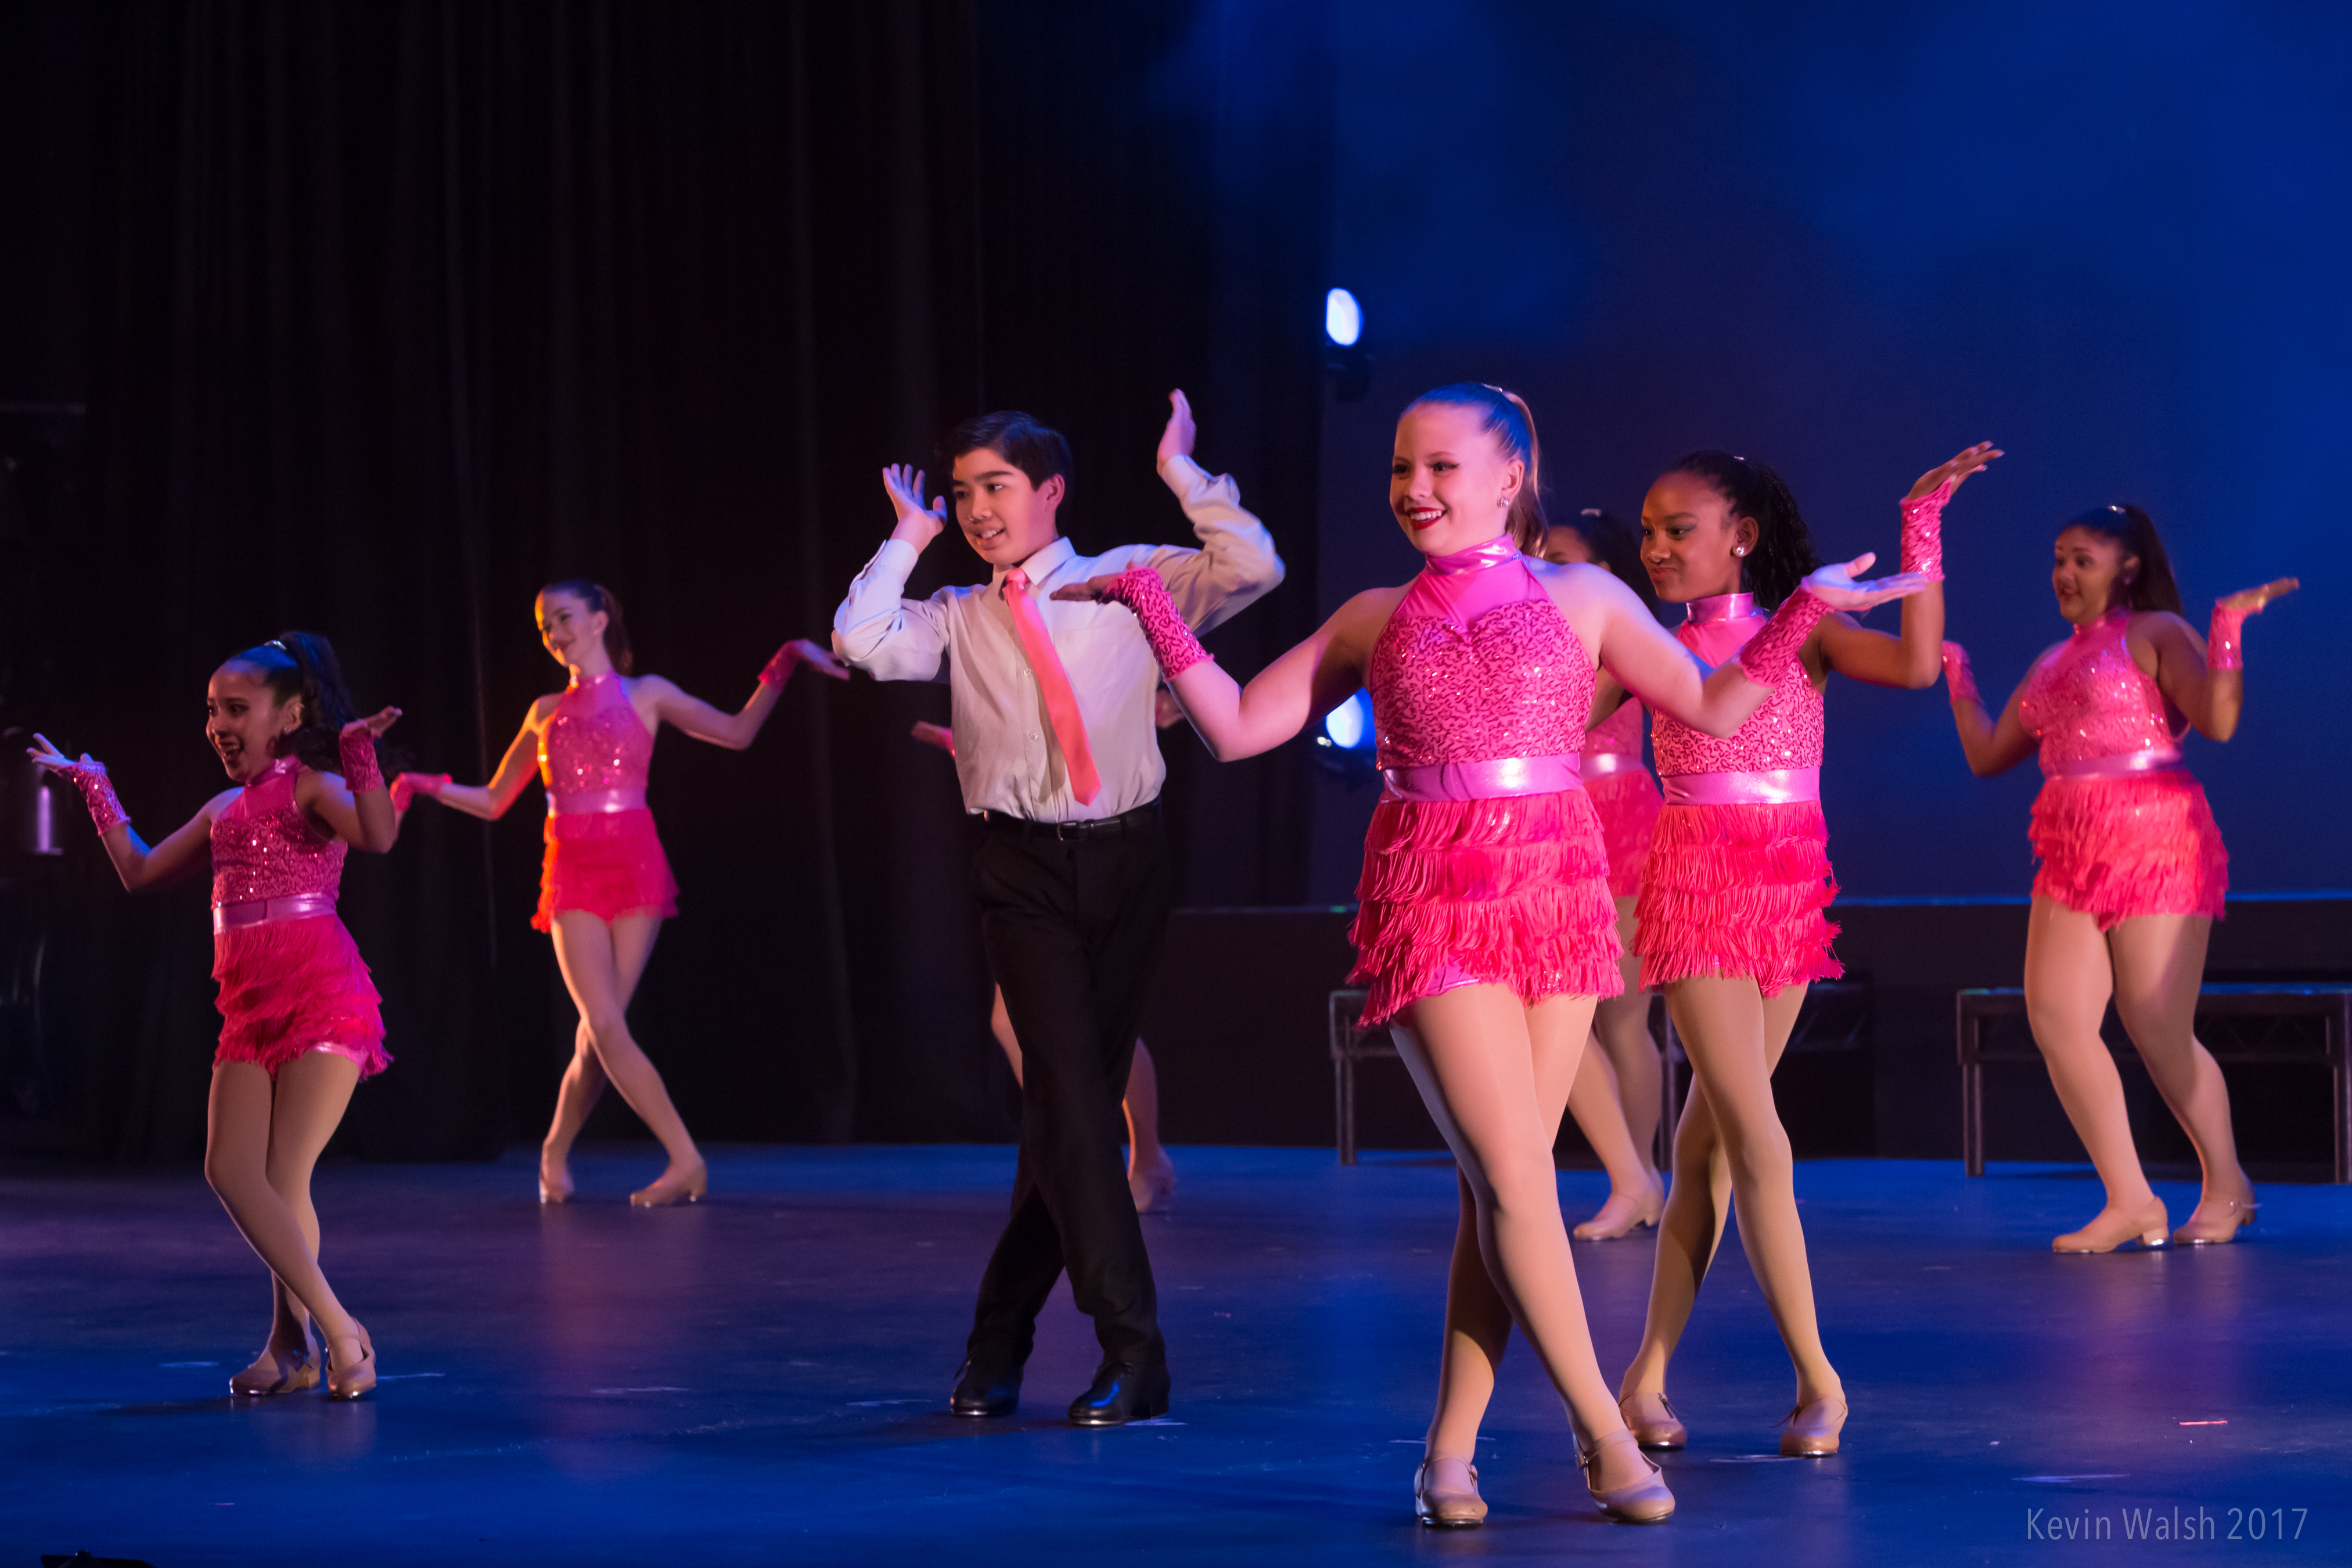 Civic dance arts program city of san diego official website view image gallery fandeluxe Gallery